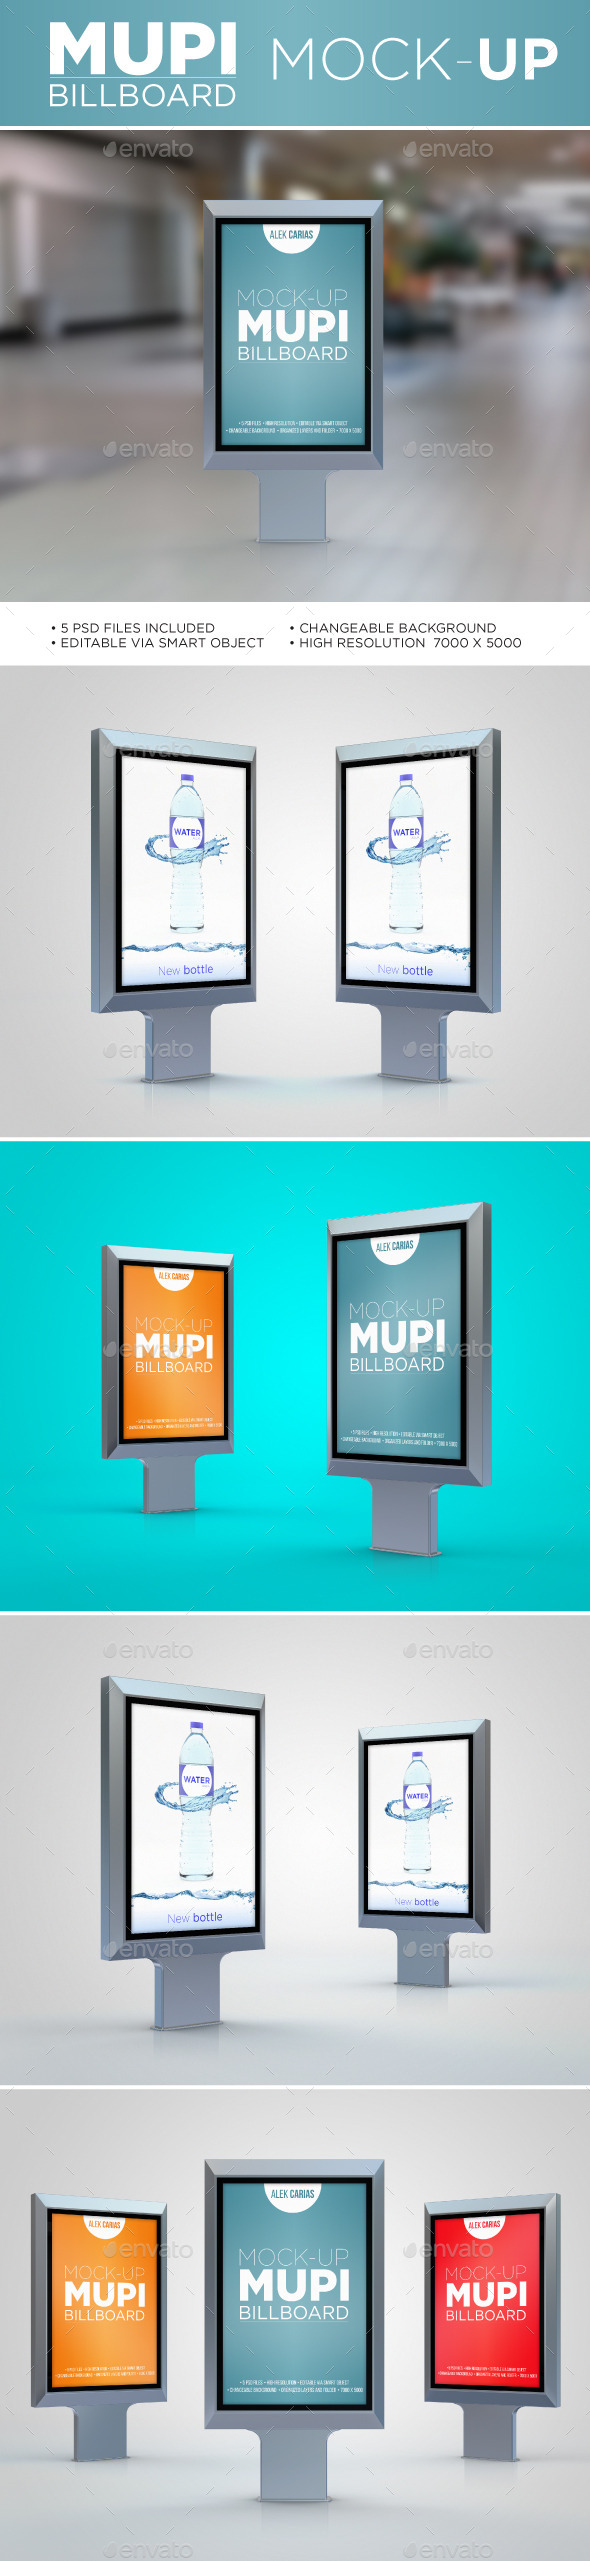 GraphicRiver Mupi Billboard Mock-Up 11585959